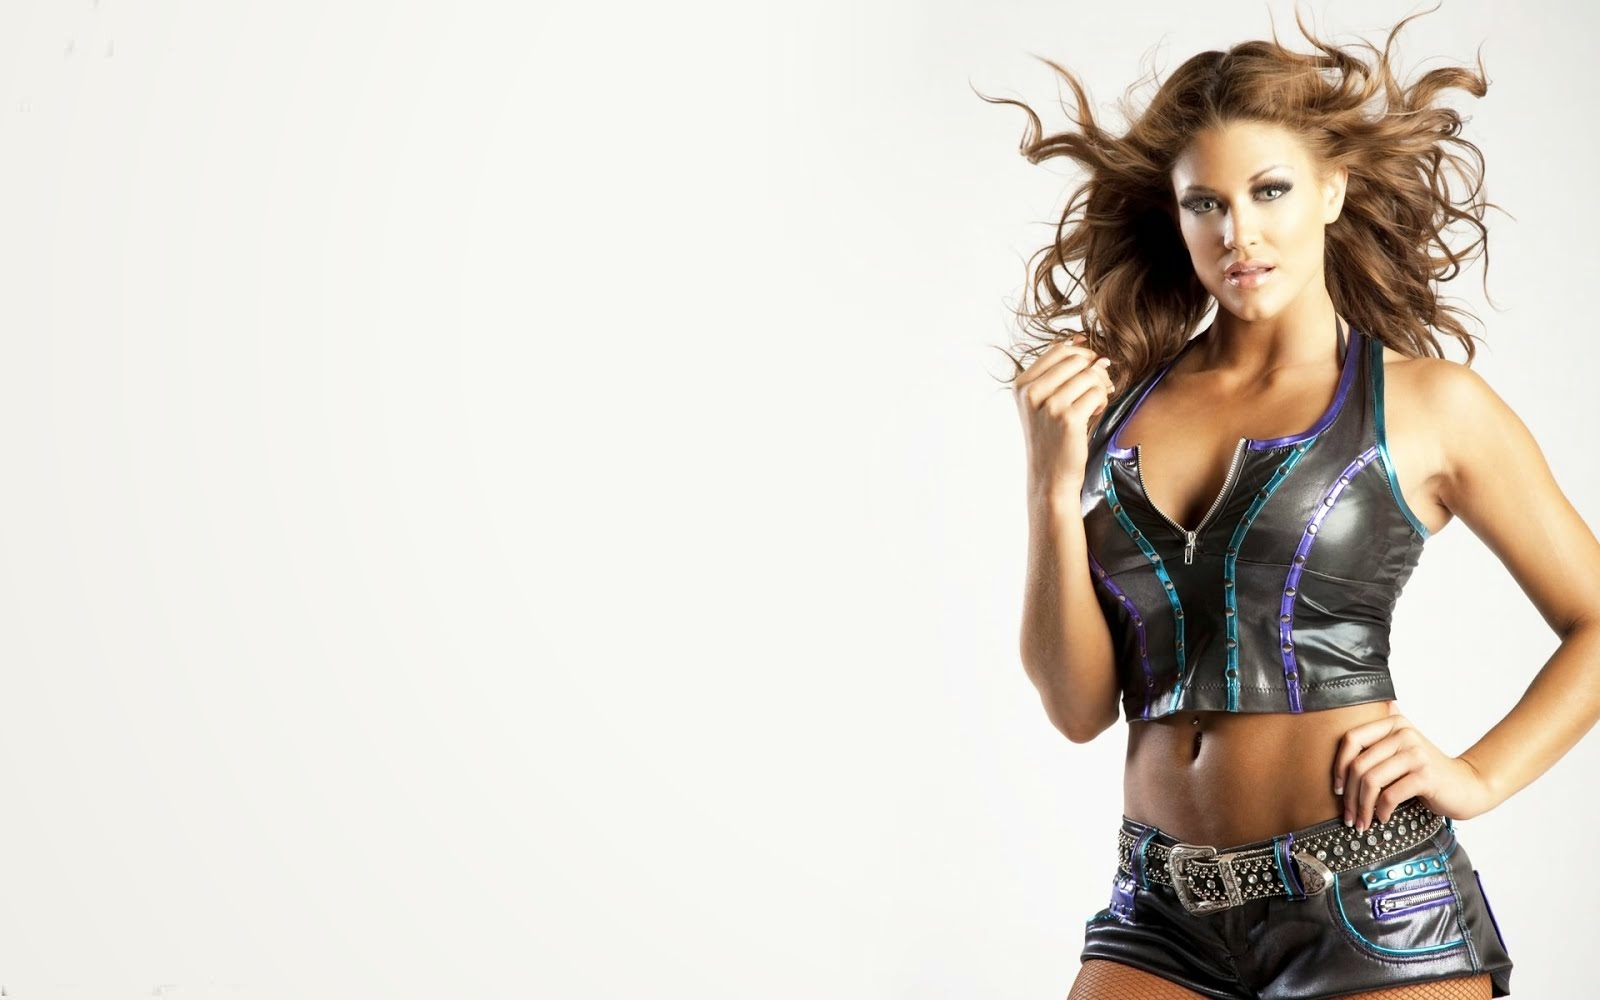 Eve Torres HD Wallpapers   Download Free High Definition Desktop